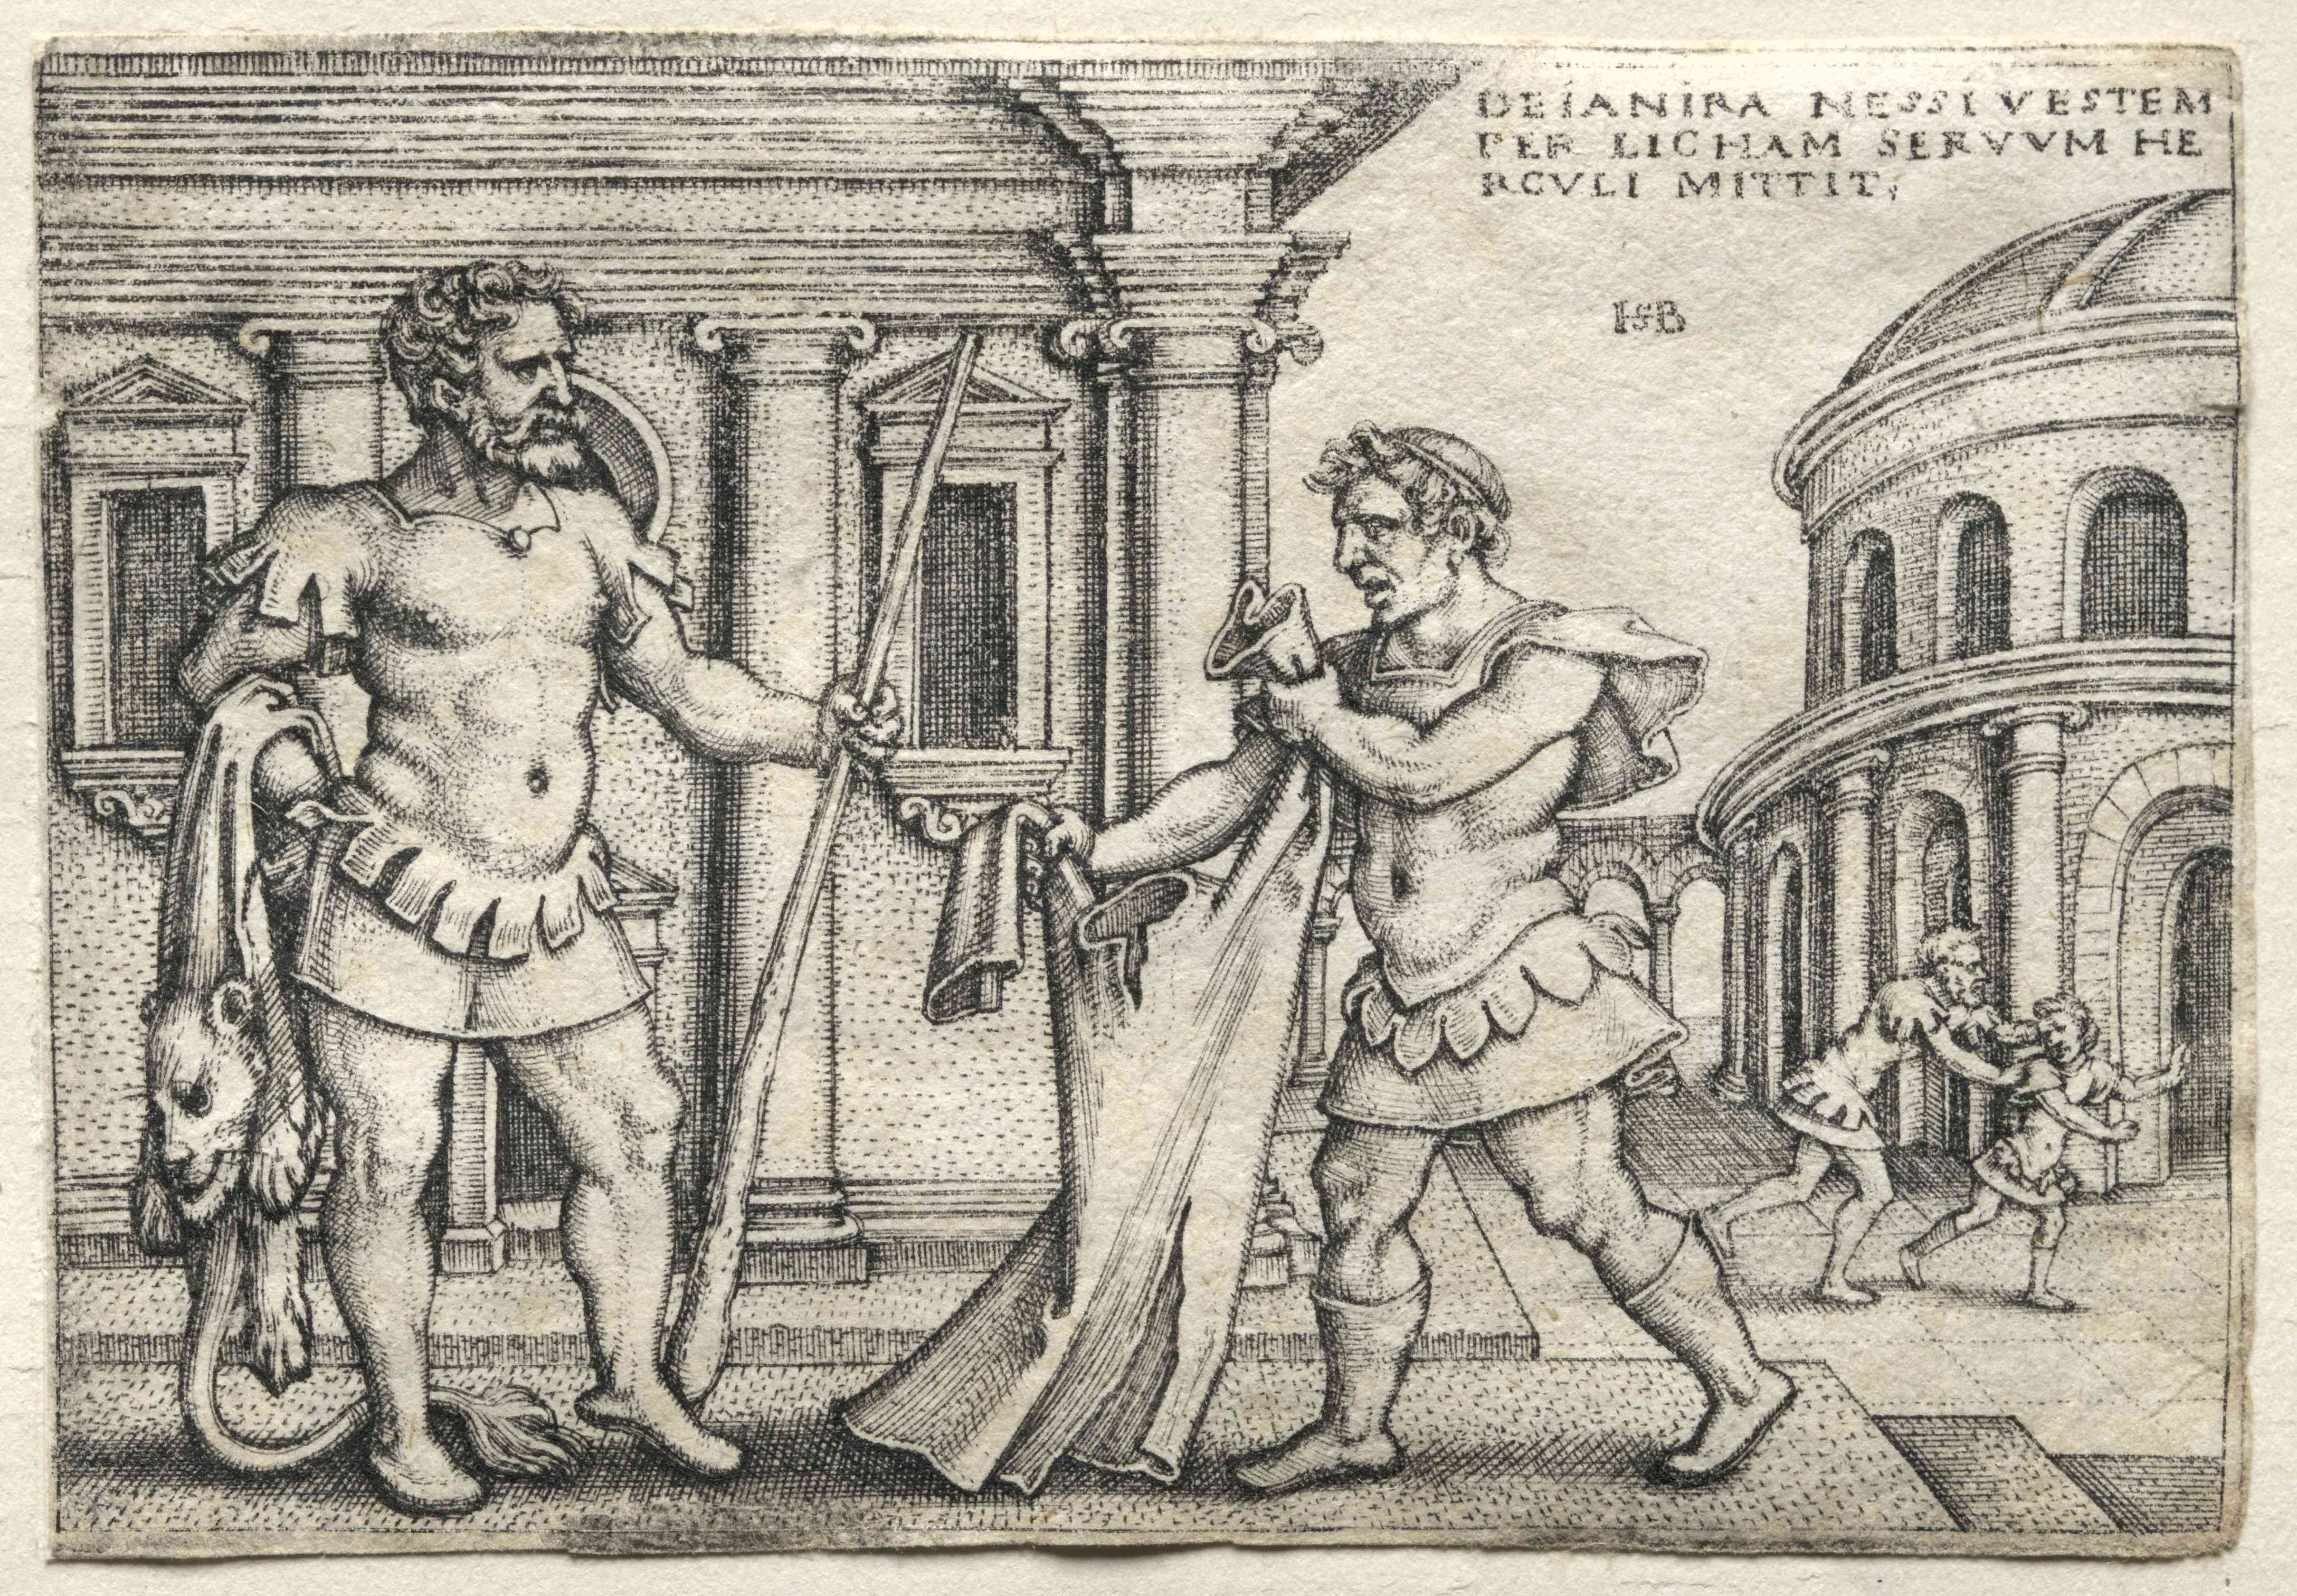 The Labors Of Hercules: Hercules Receiving The Garment Steeped In Nessus Blood